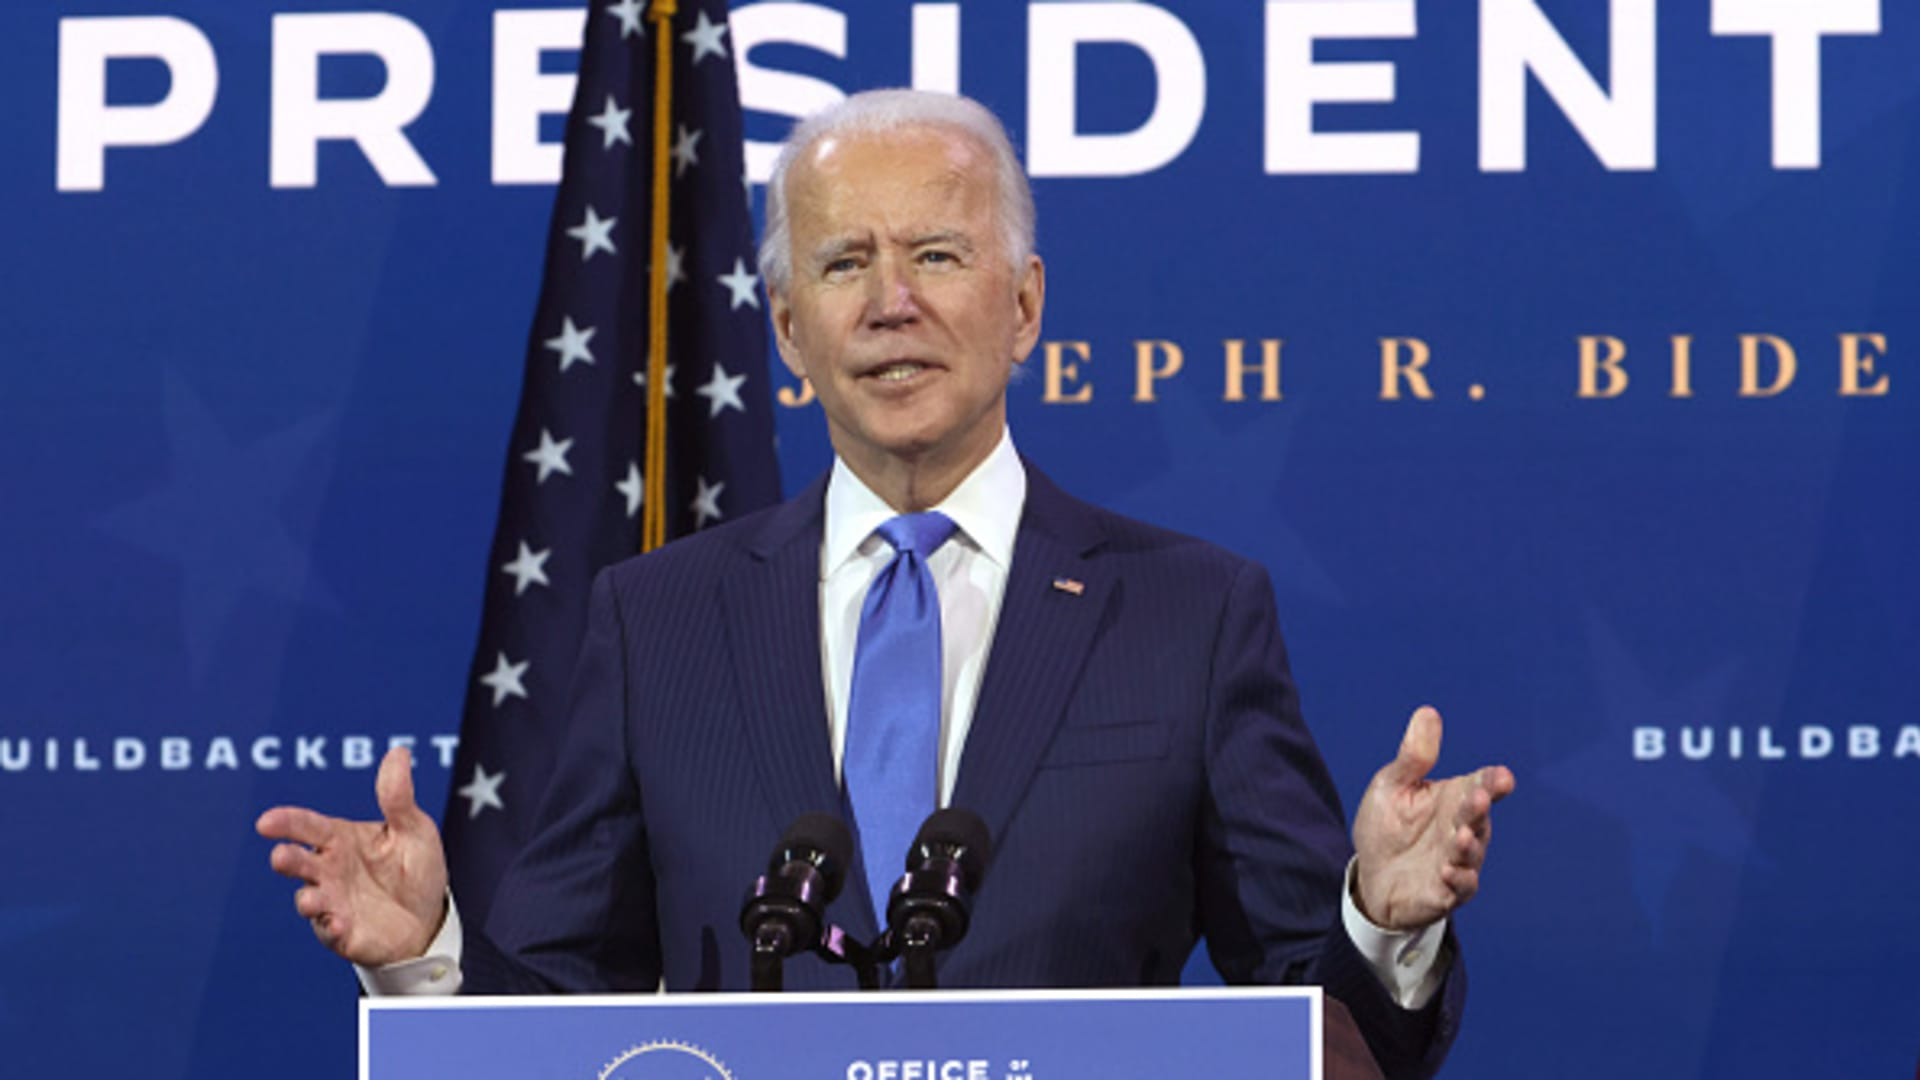 U.S. President-elect Joe Biden speaks during an event to name his economic team at the Queen Theater December 1, 2020 in Wilmington, Delaware.